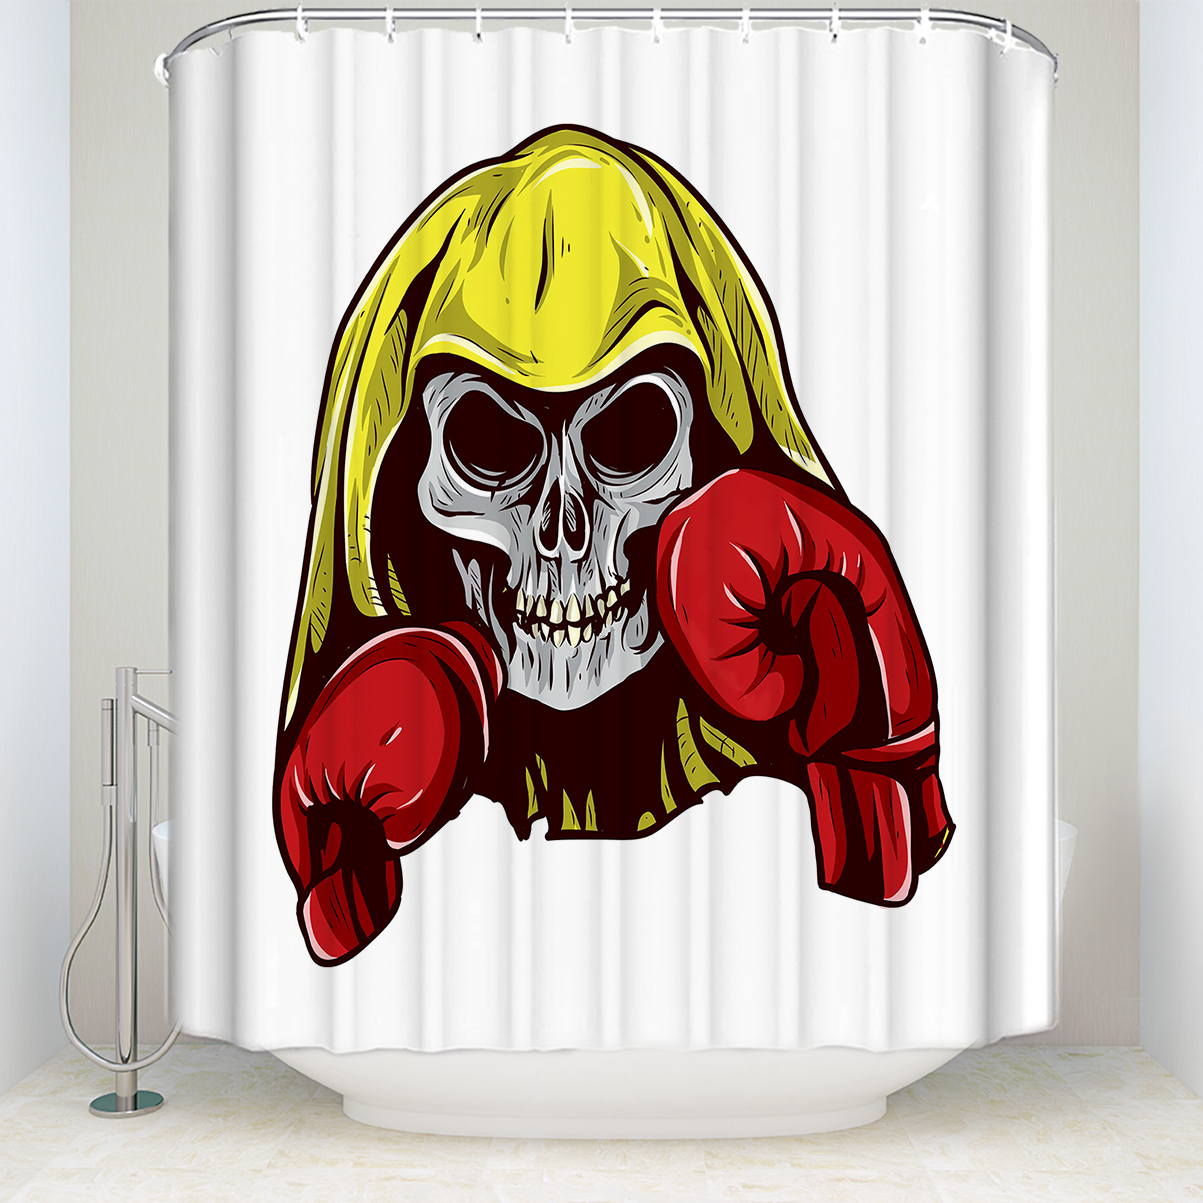 Us 15 28 36 Off Charmhome Boxing Decor Shower Curtain Skull With Boxing Leather Gloves Polyester Fabric Shower Curtain For Bathroom Yellow Red In